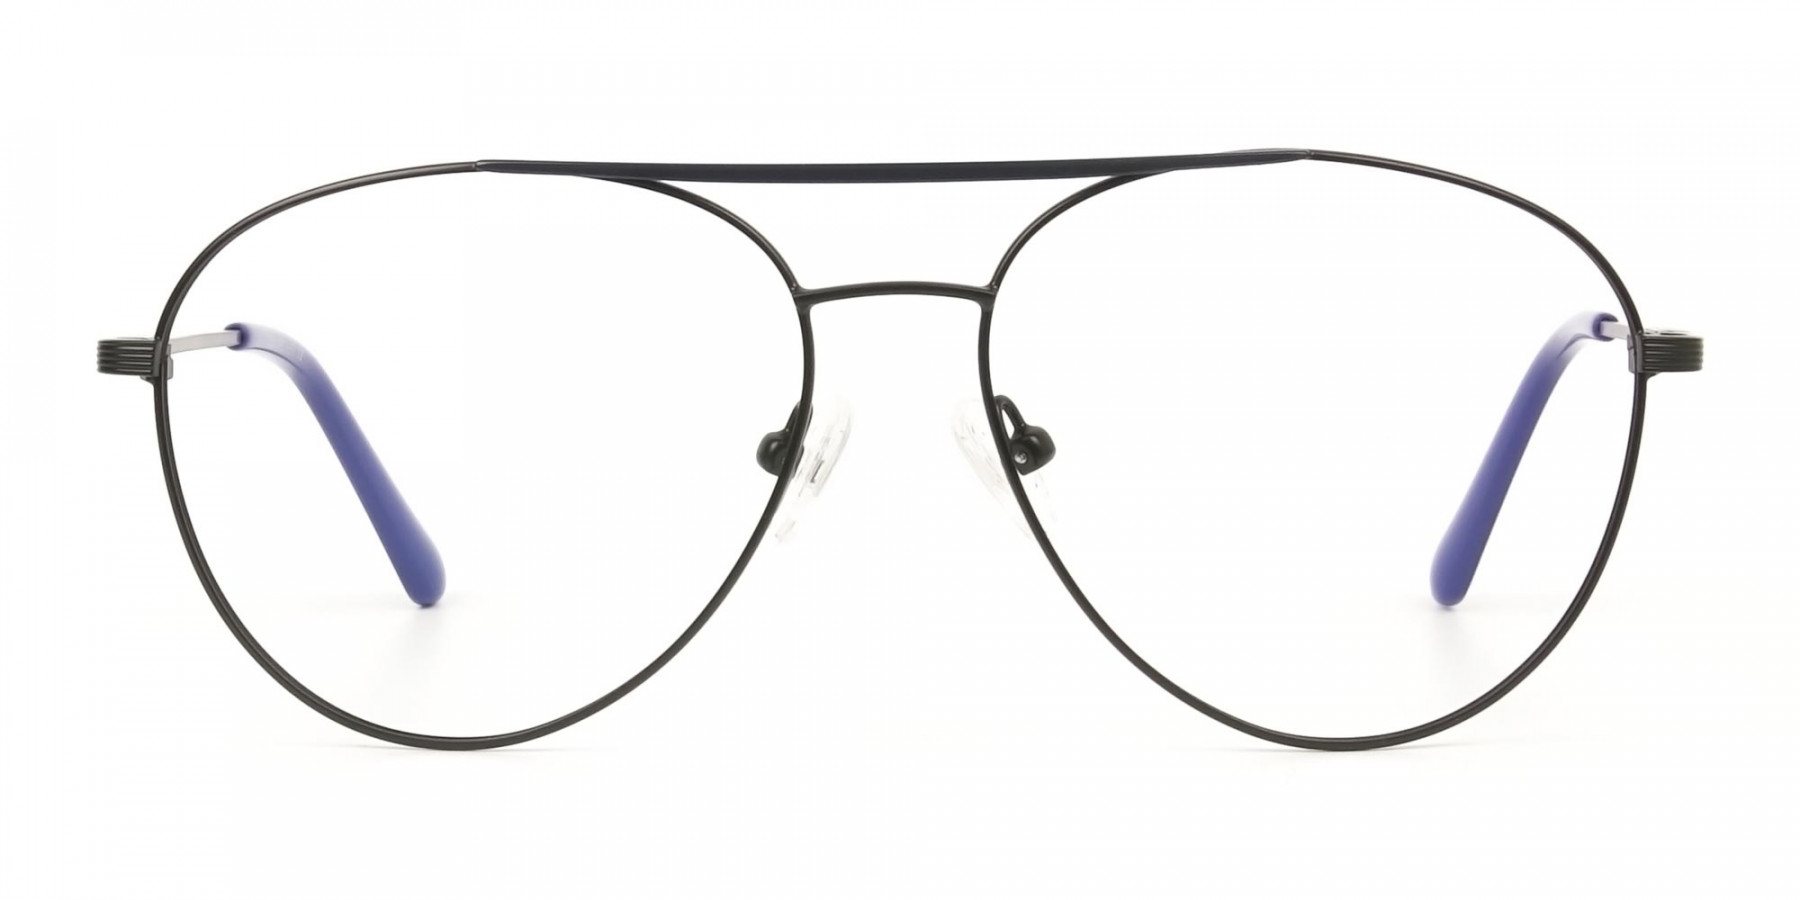 Black Flat Bridge Metal Aviator Glasses - 1